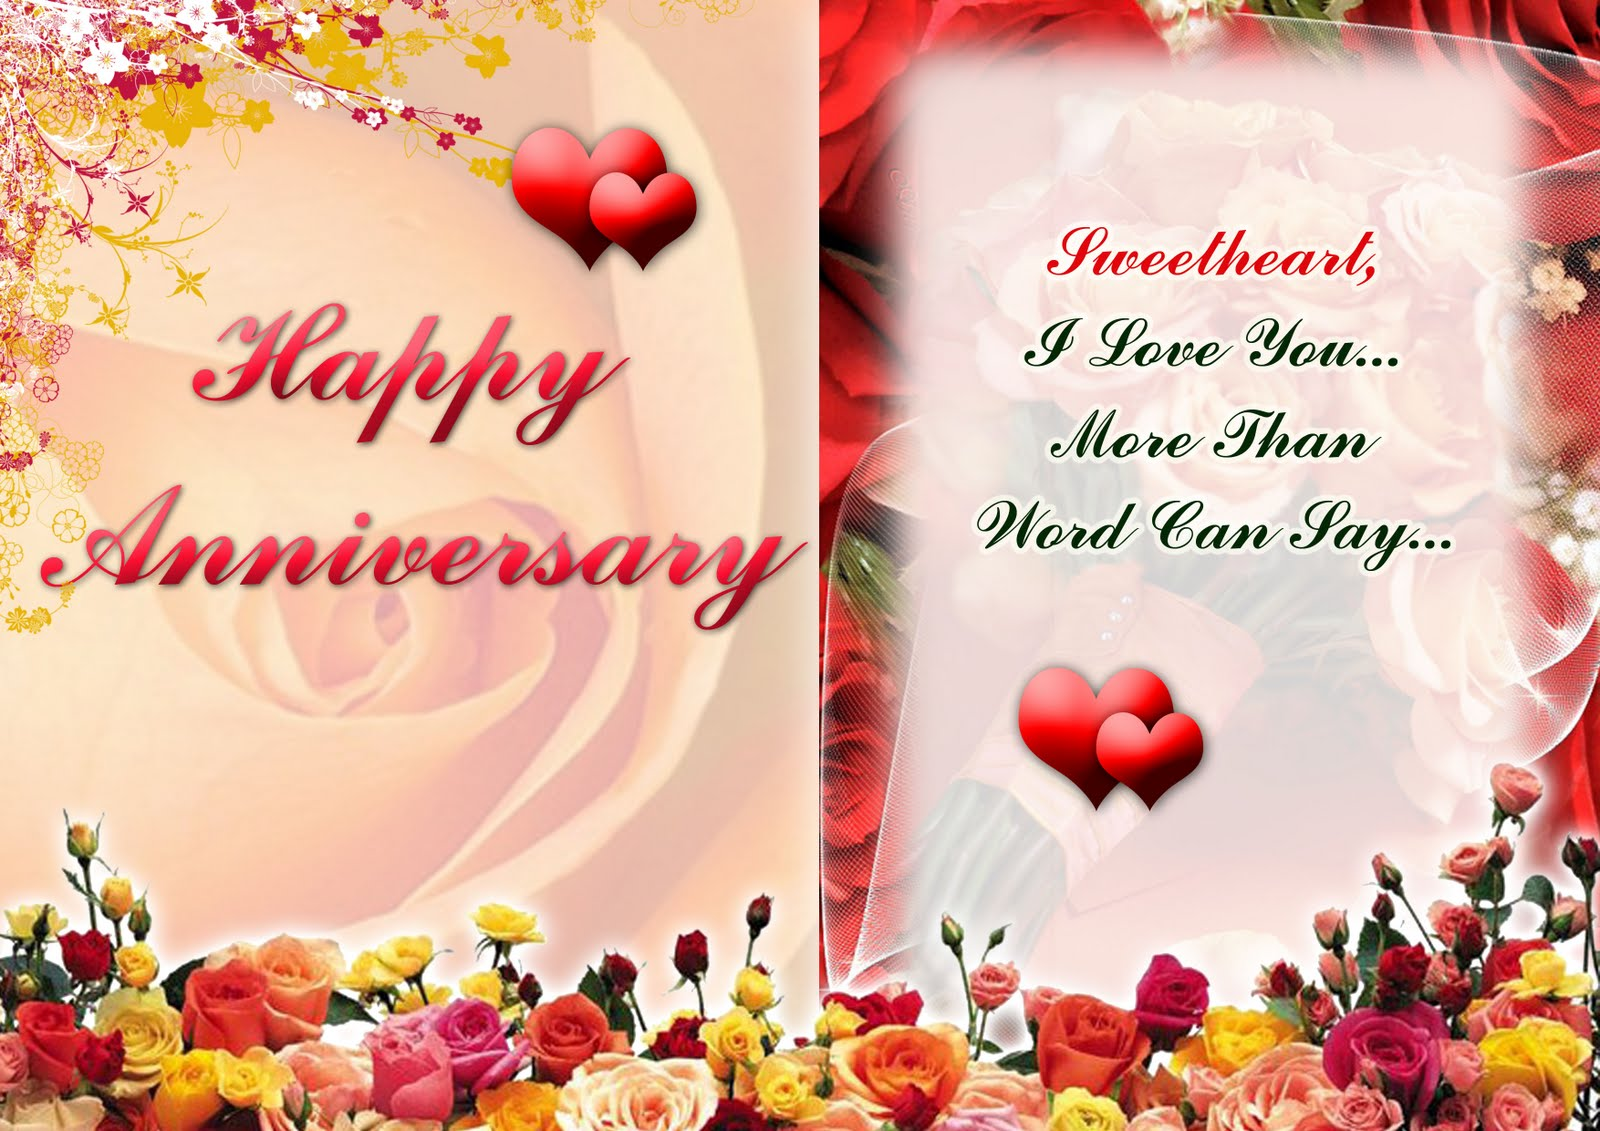 Khushi for life: lovely happy anniversary wishes ecards postcards